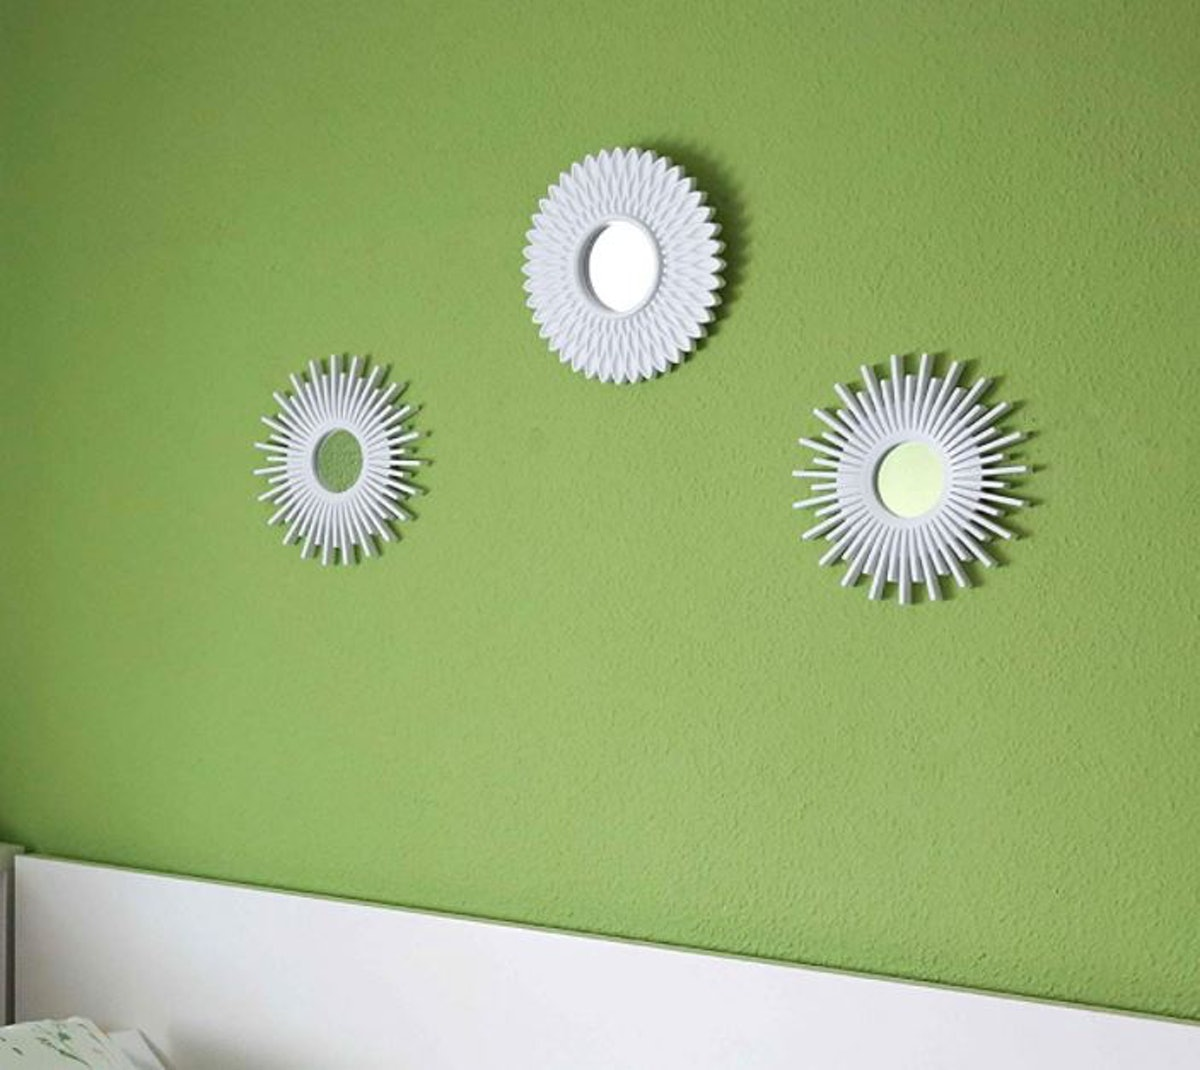 BONNYCO Decor Wall Mirrors (Pack of 3)